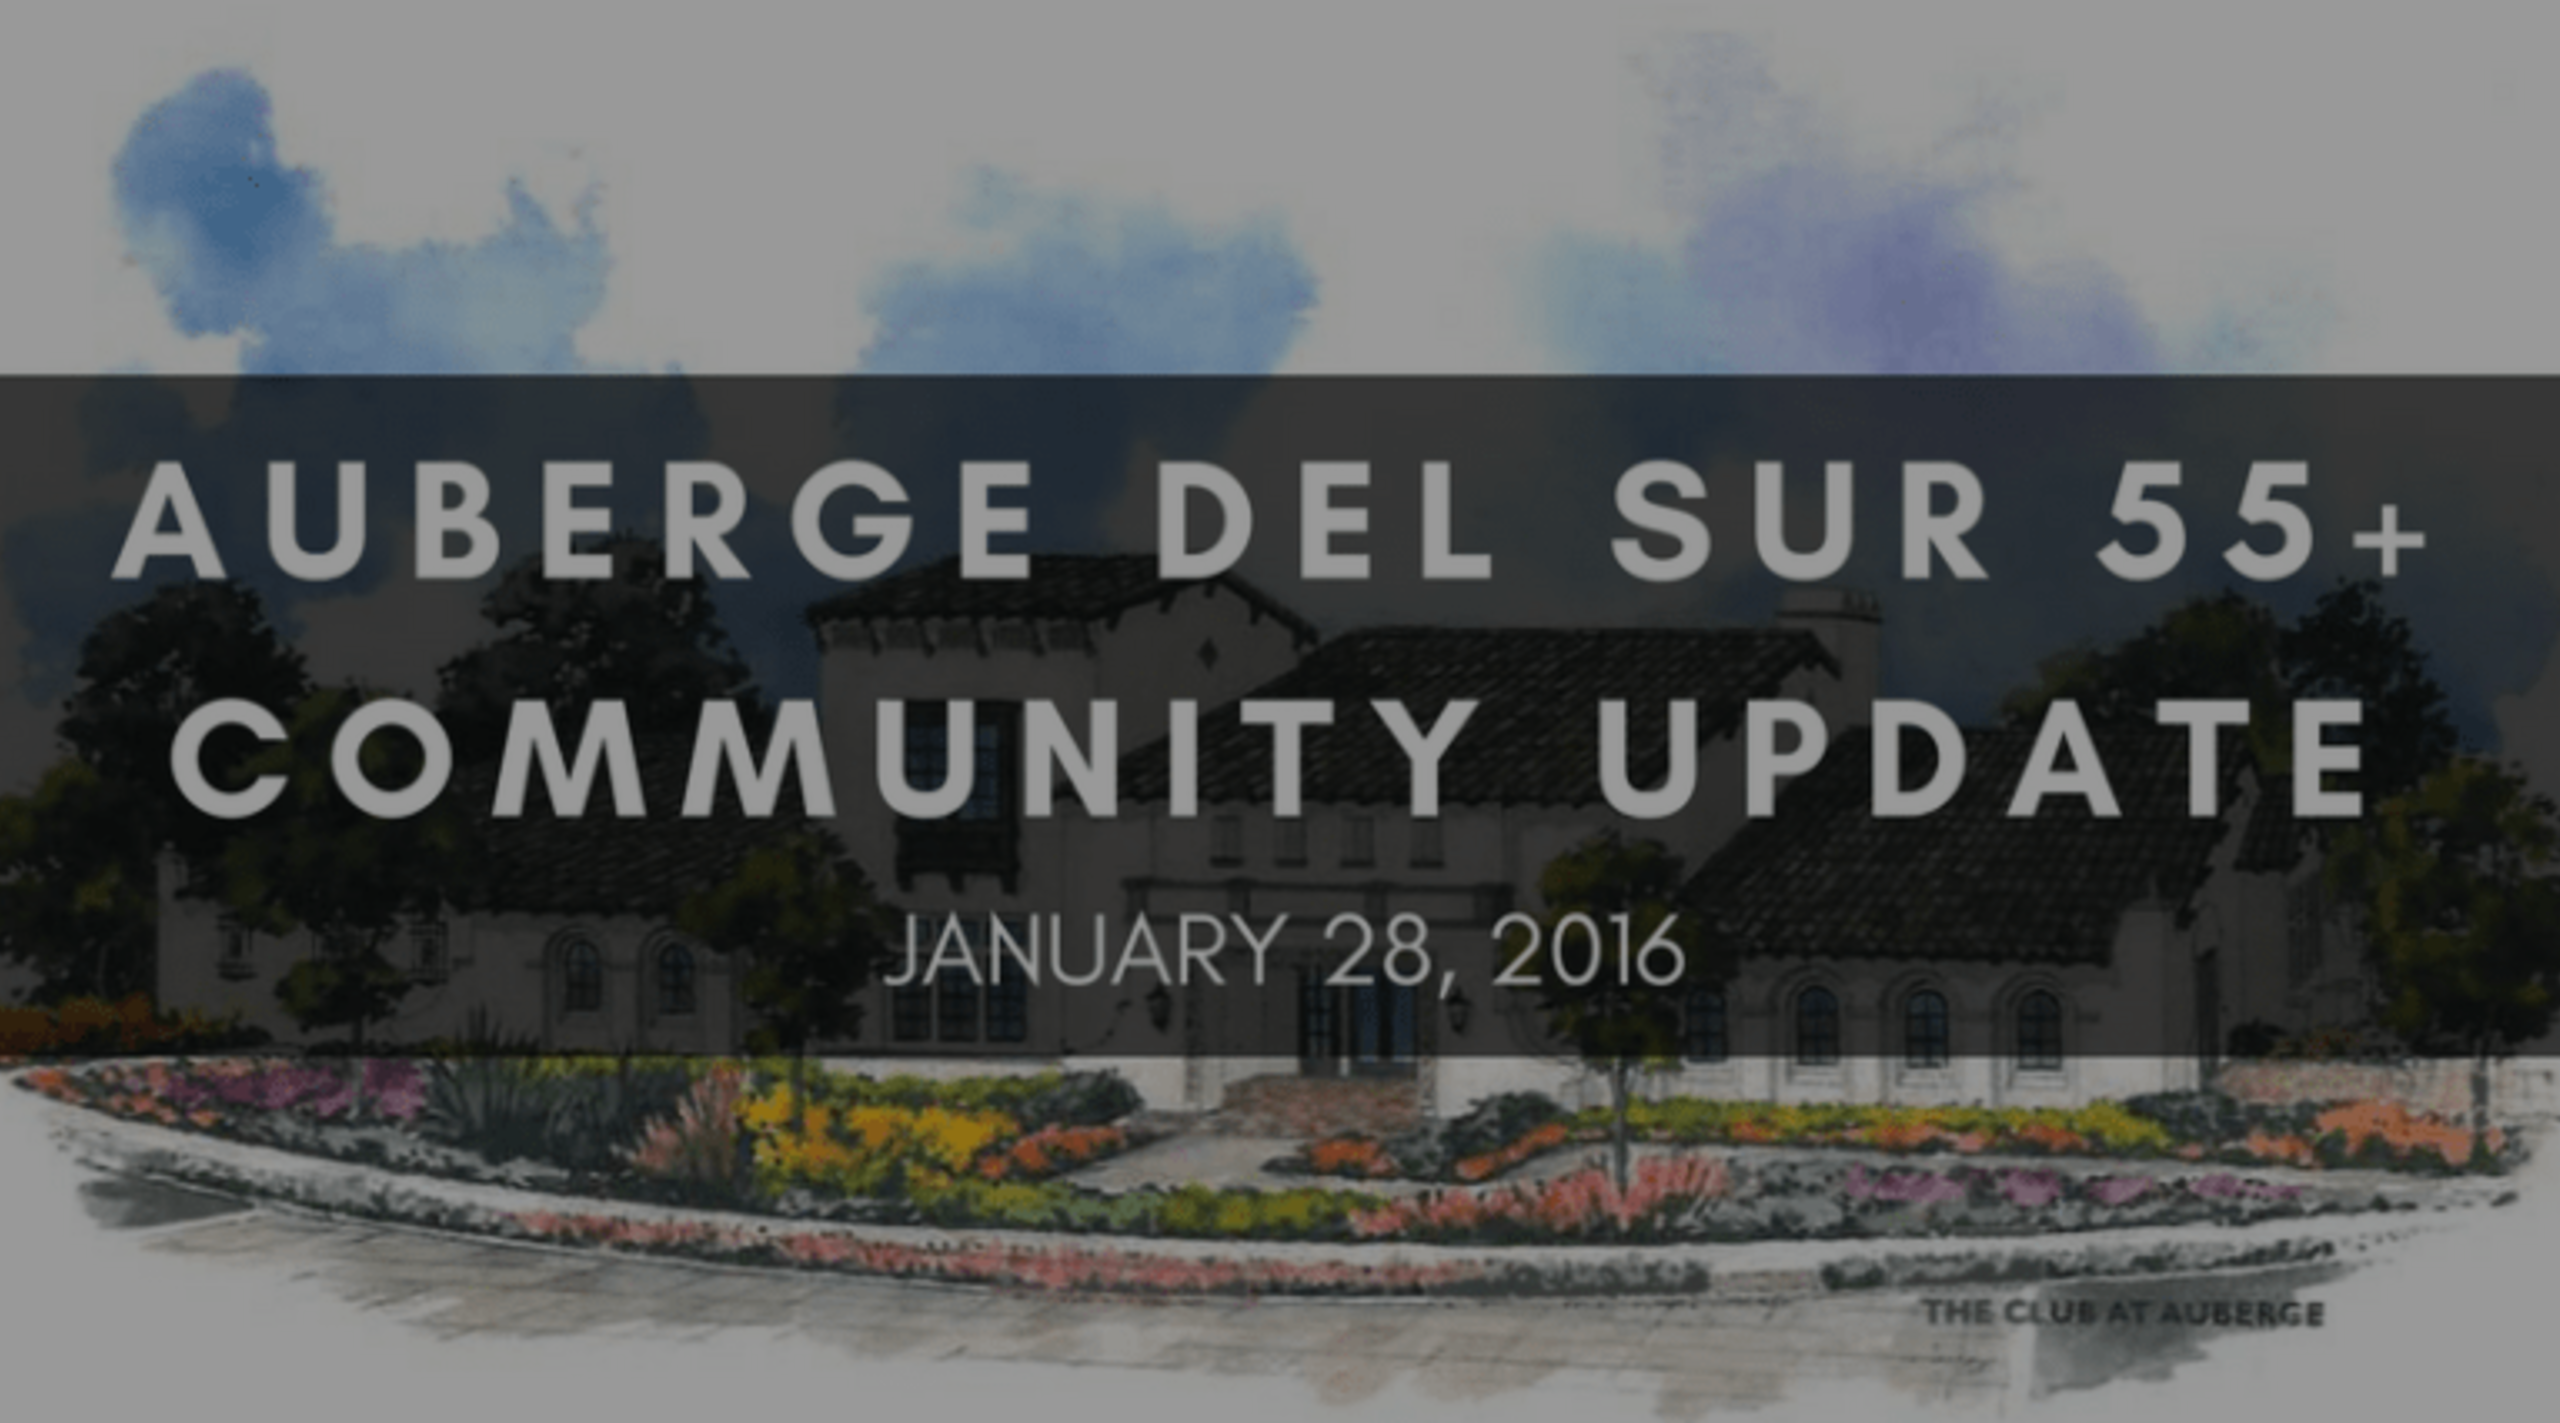 AUBERGE DEL SUR 55+ COMMUNITY UPDATE | JANUARY 28, 2016